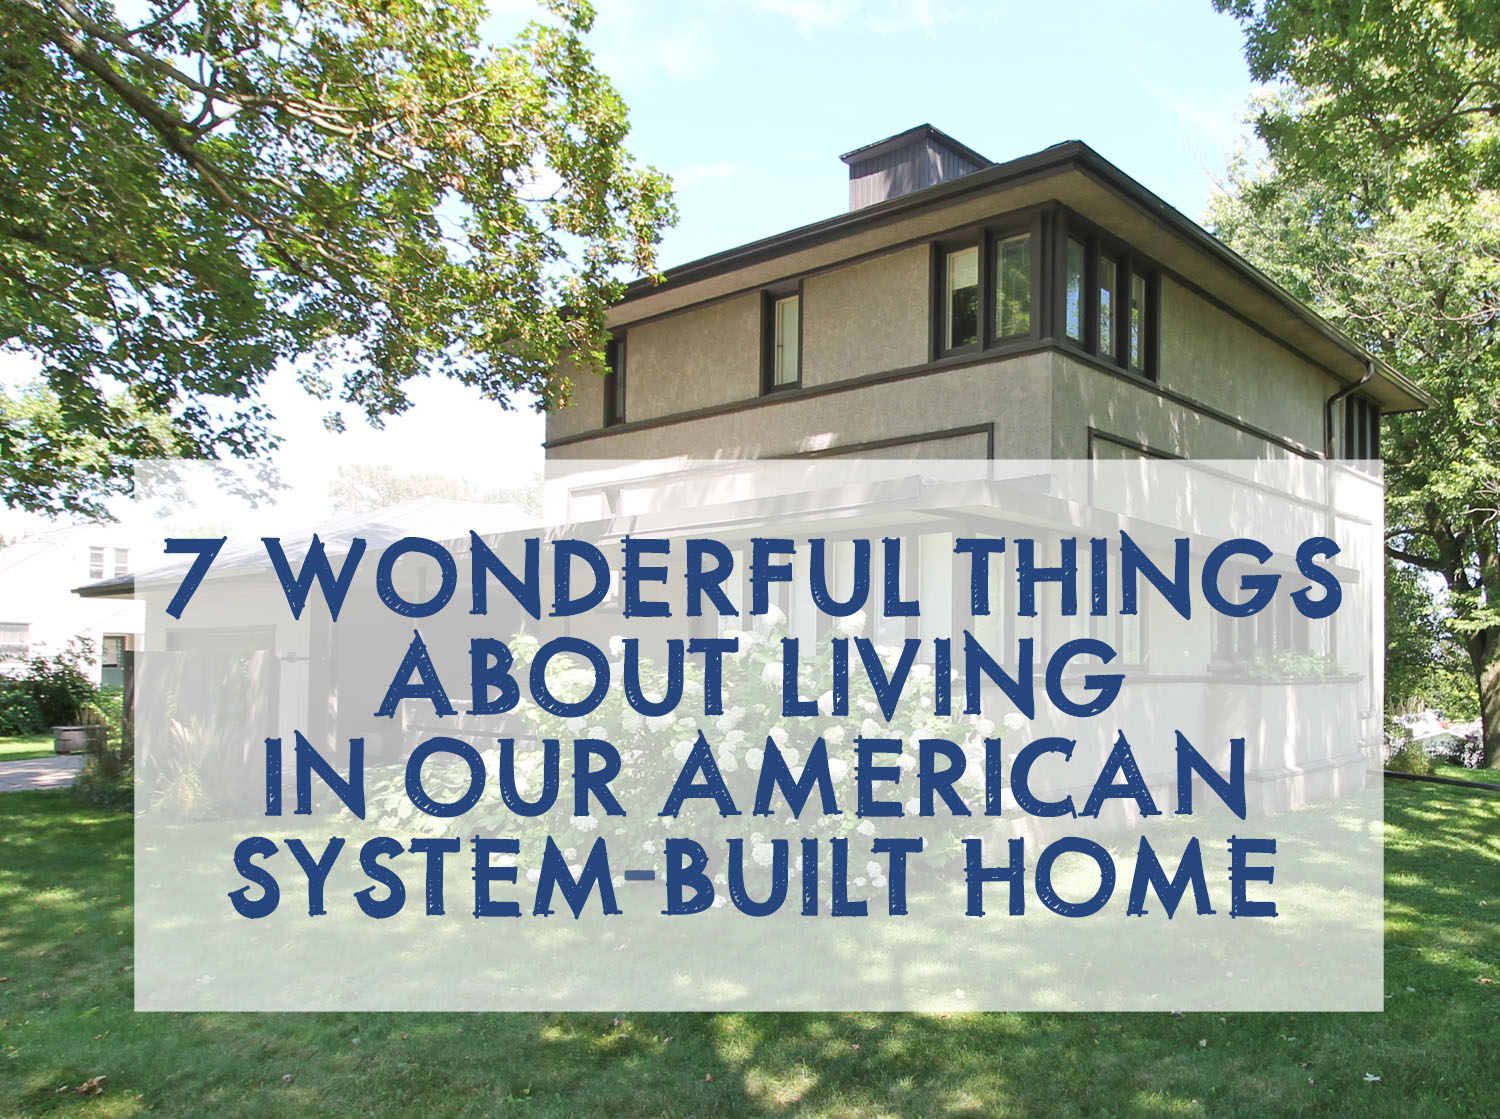 7 Wonderful Things About Living in Our American System-Built Home